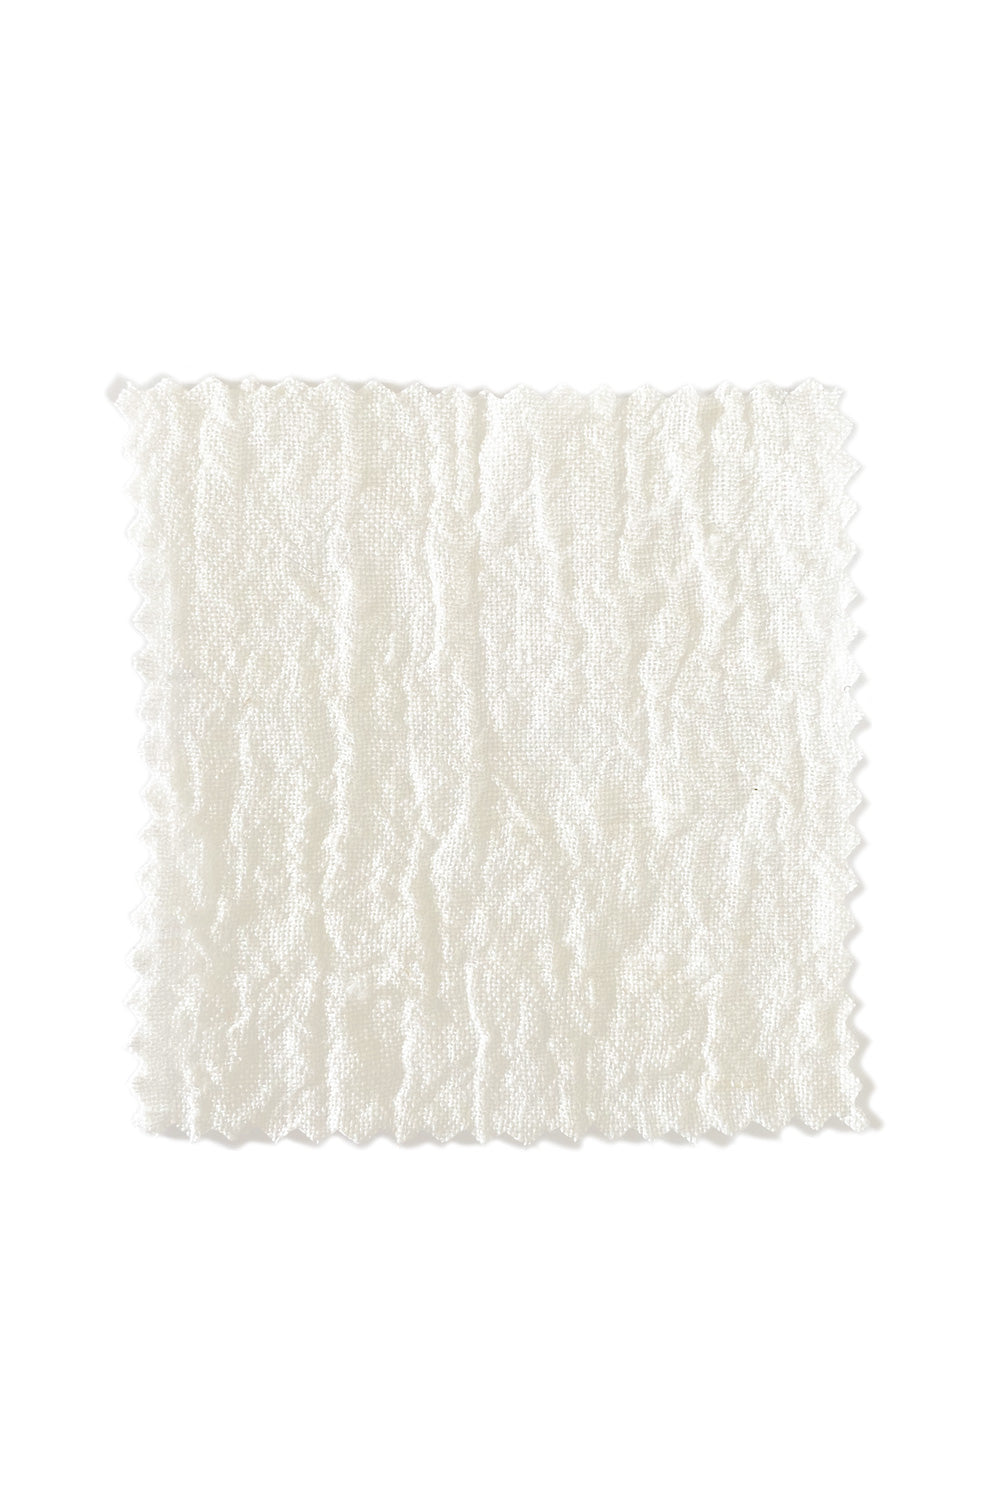 Ivory Linen Gauze by the Yard